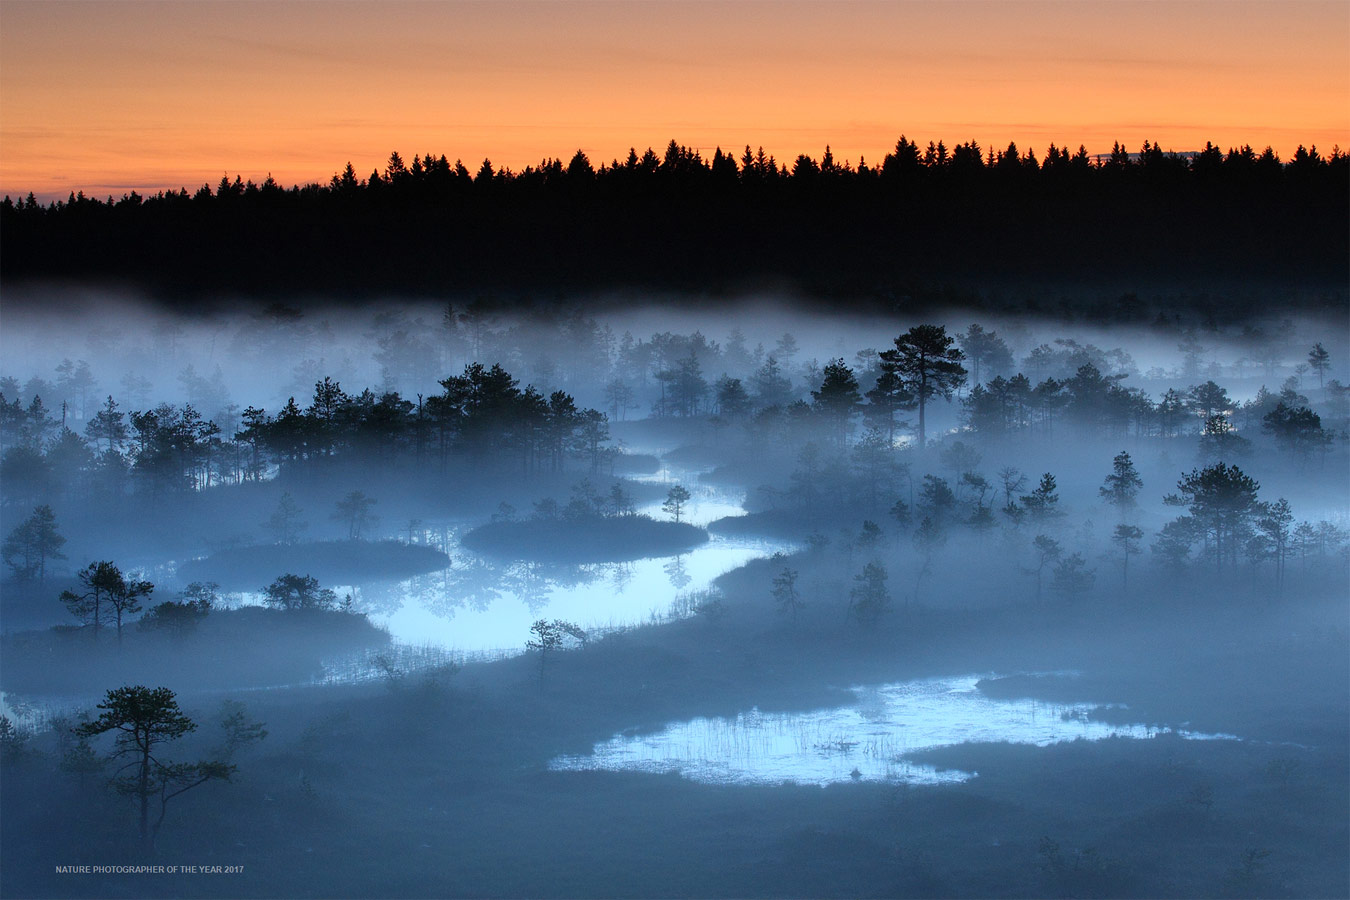 Early morning in the bog, © Remo Savisaar, Winner by Category C5 - Landscapes, Nature Photographer of the Year